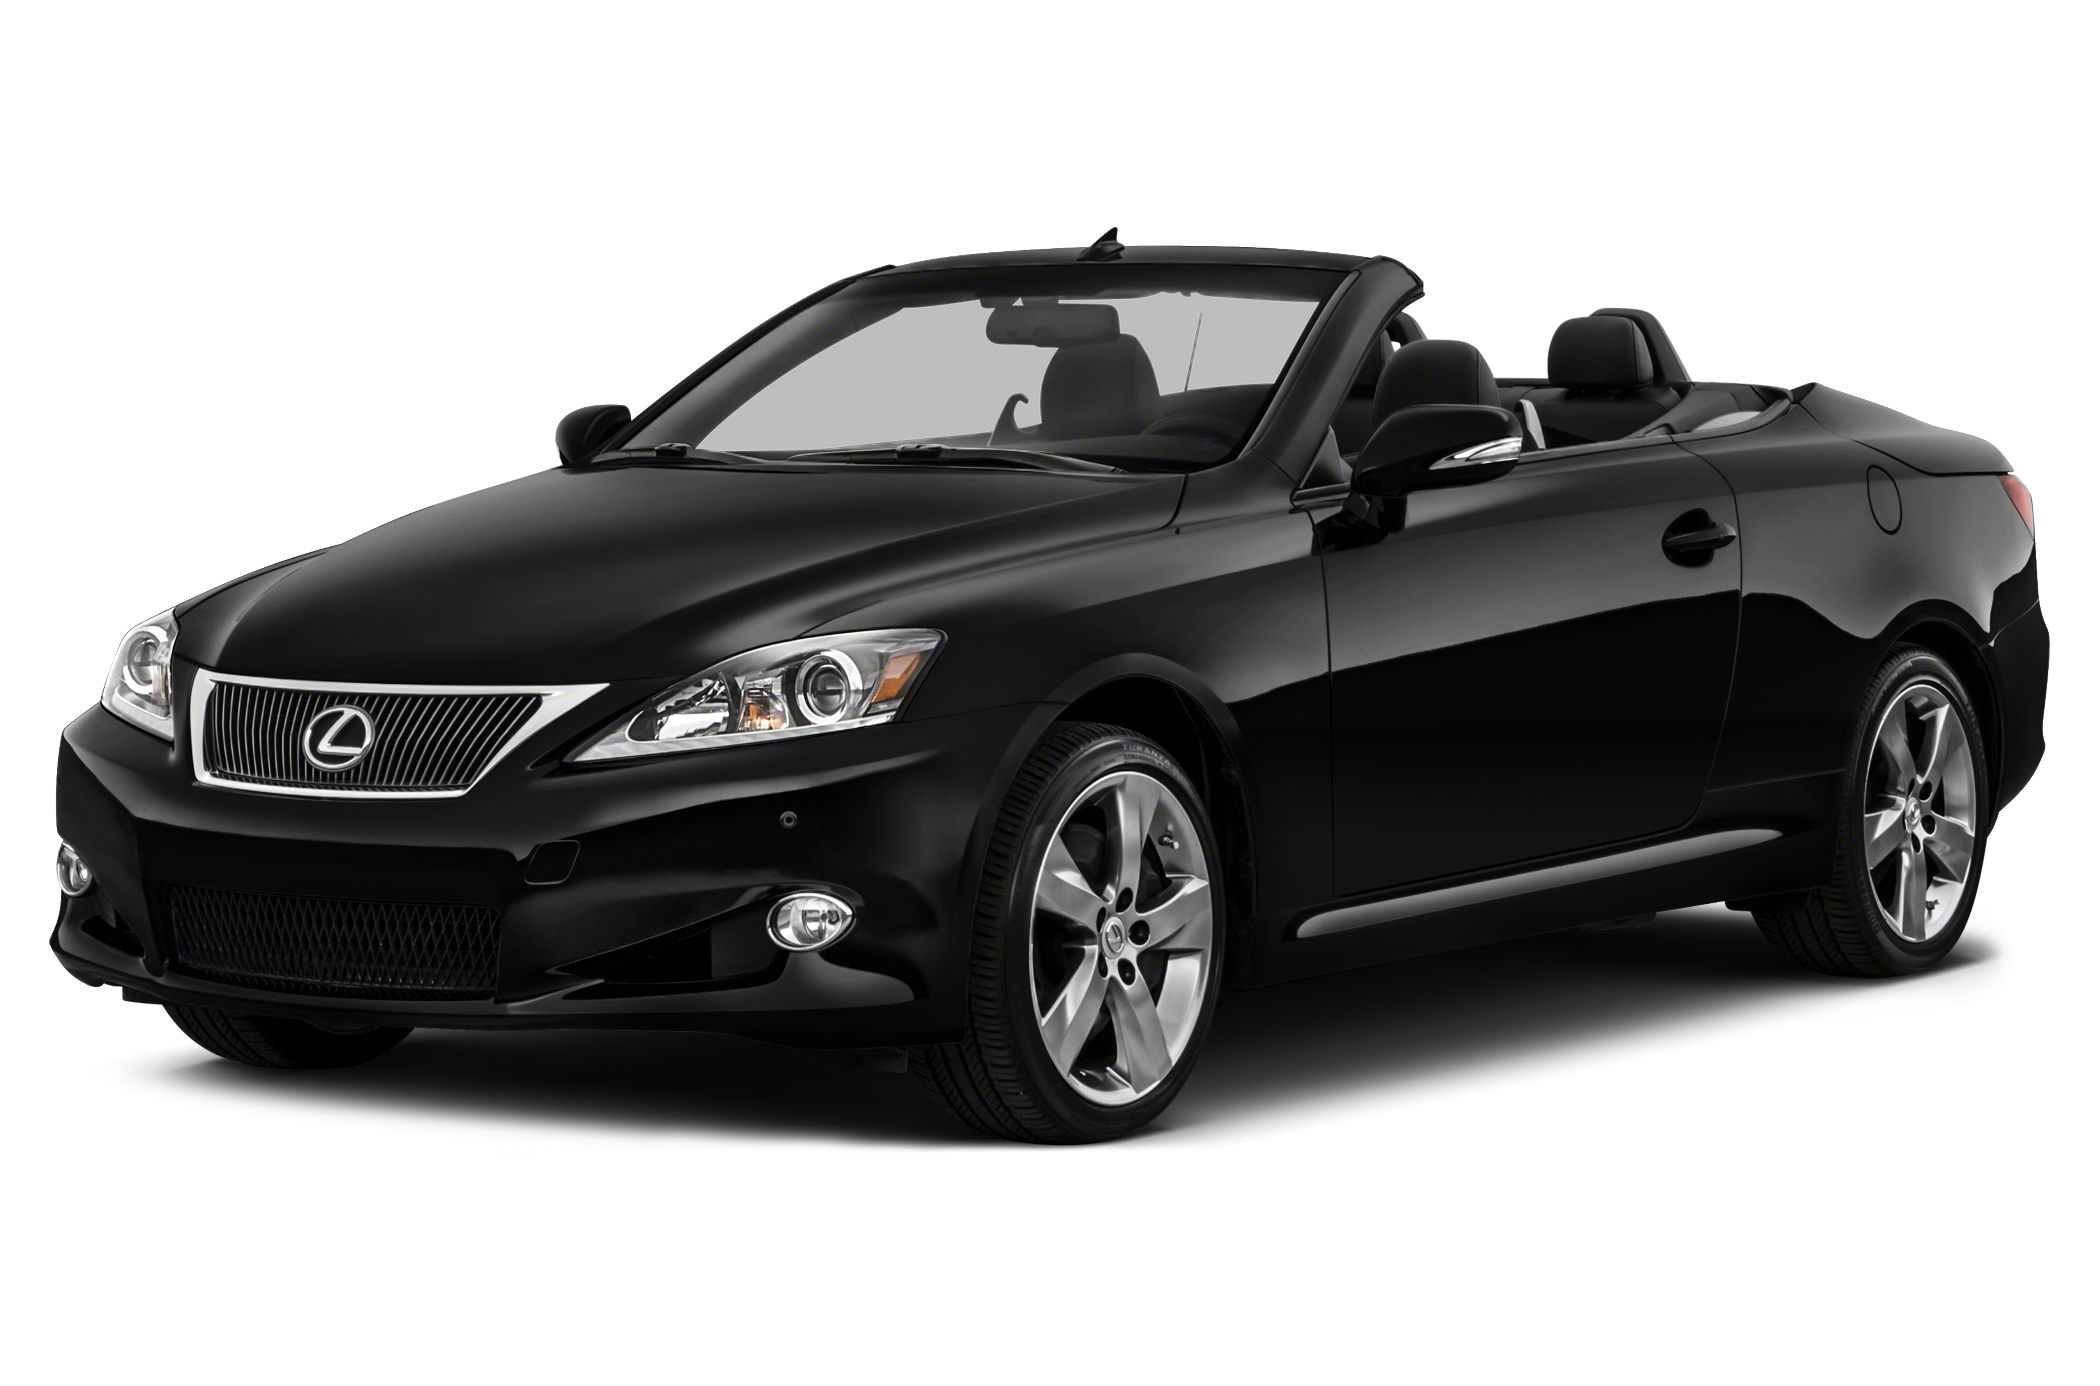 2013 Lexus IS 250C Base PREMIUM PLUS PKGCARFAX CERTIFIEDF SPORTCONVERTIBLEFULLY LOADED